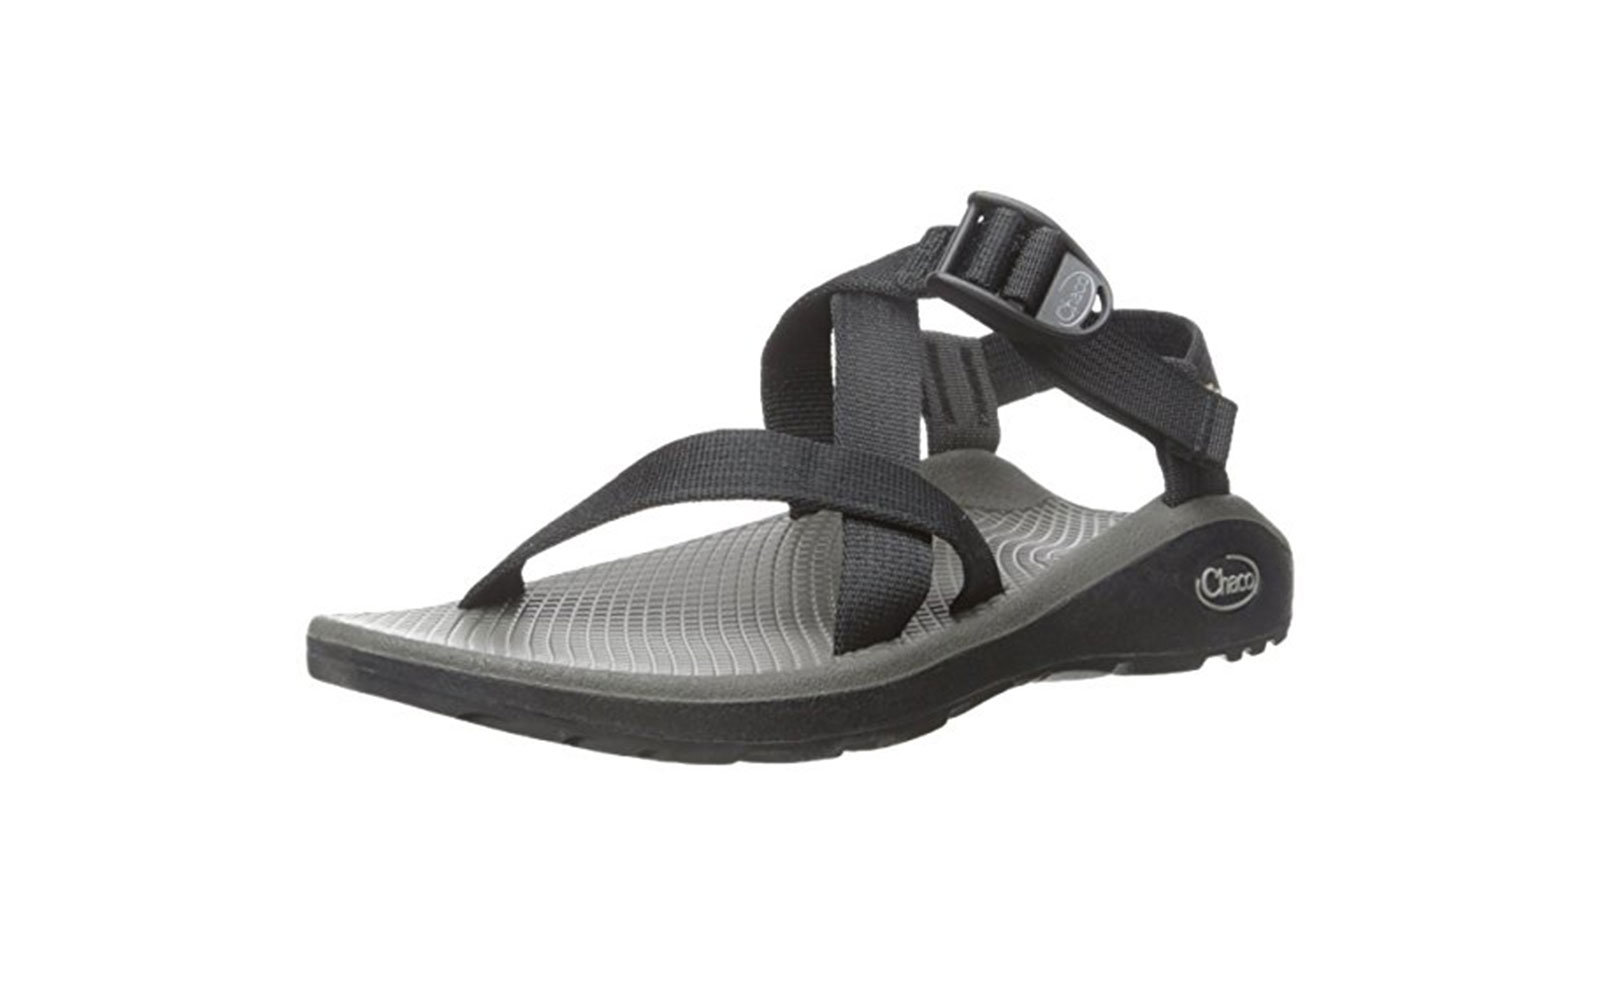 Chaco Zcloud sports sandals